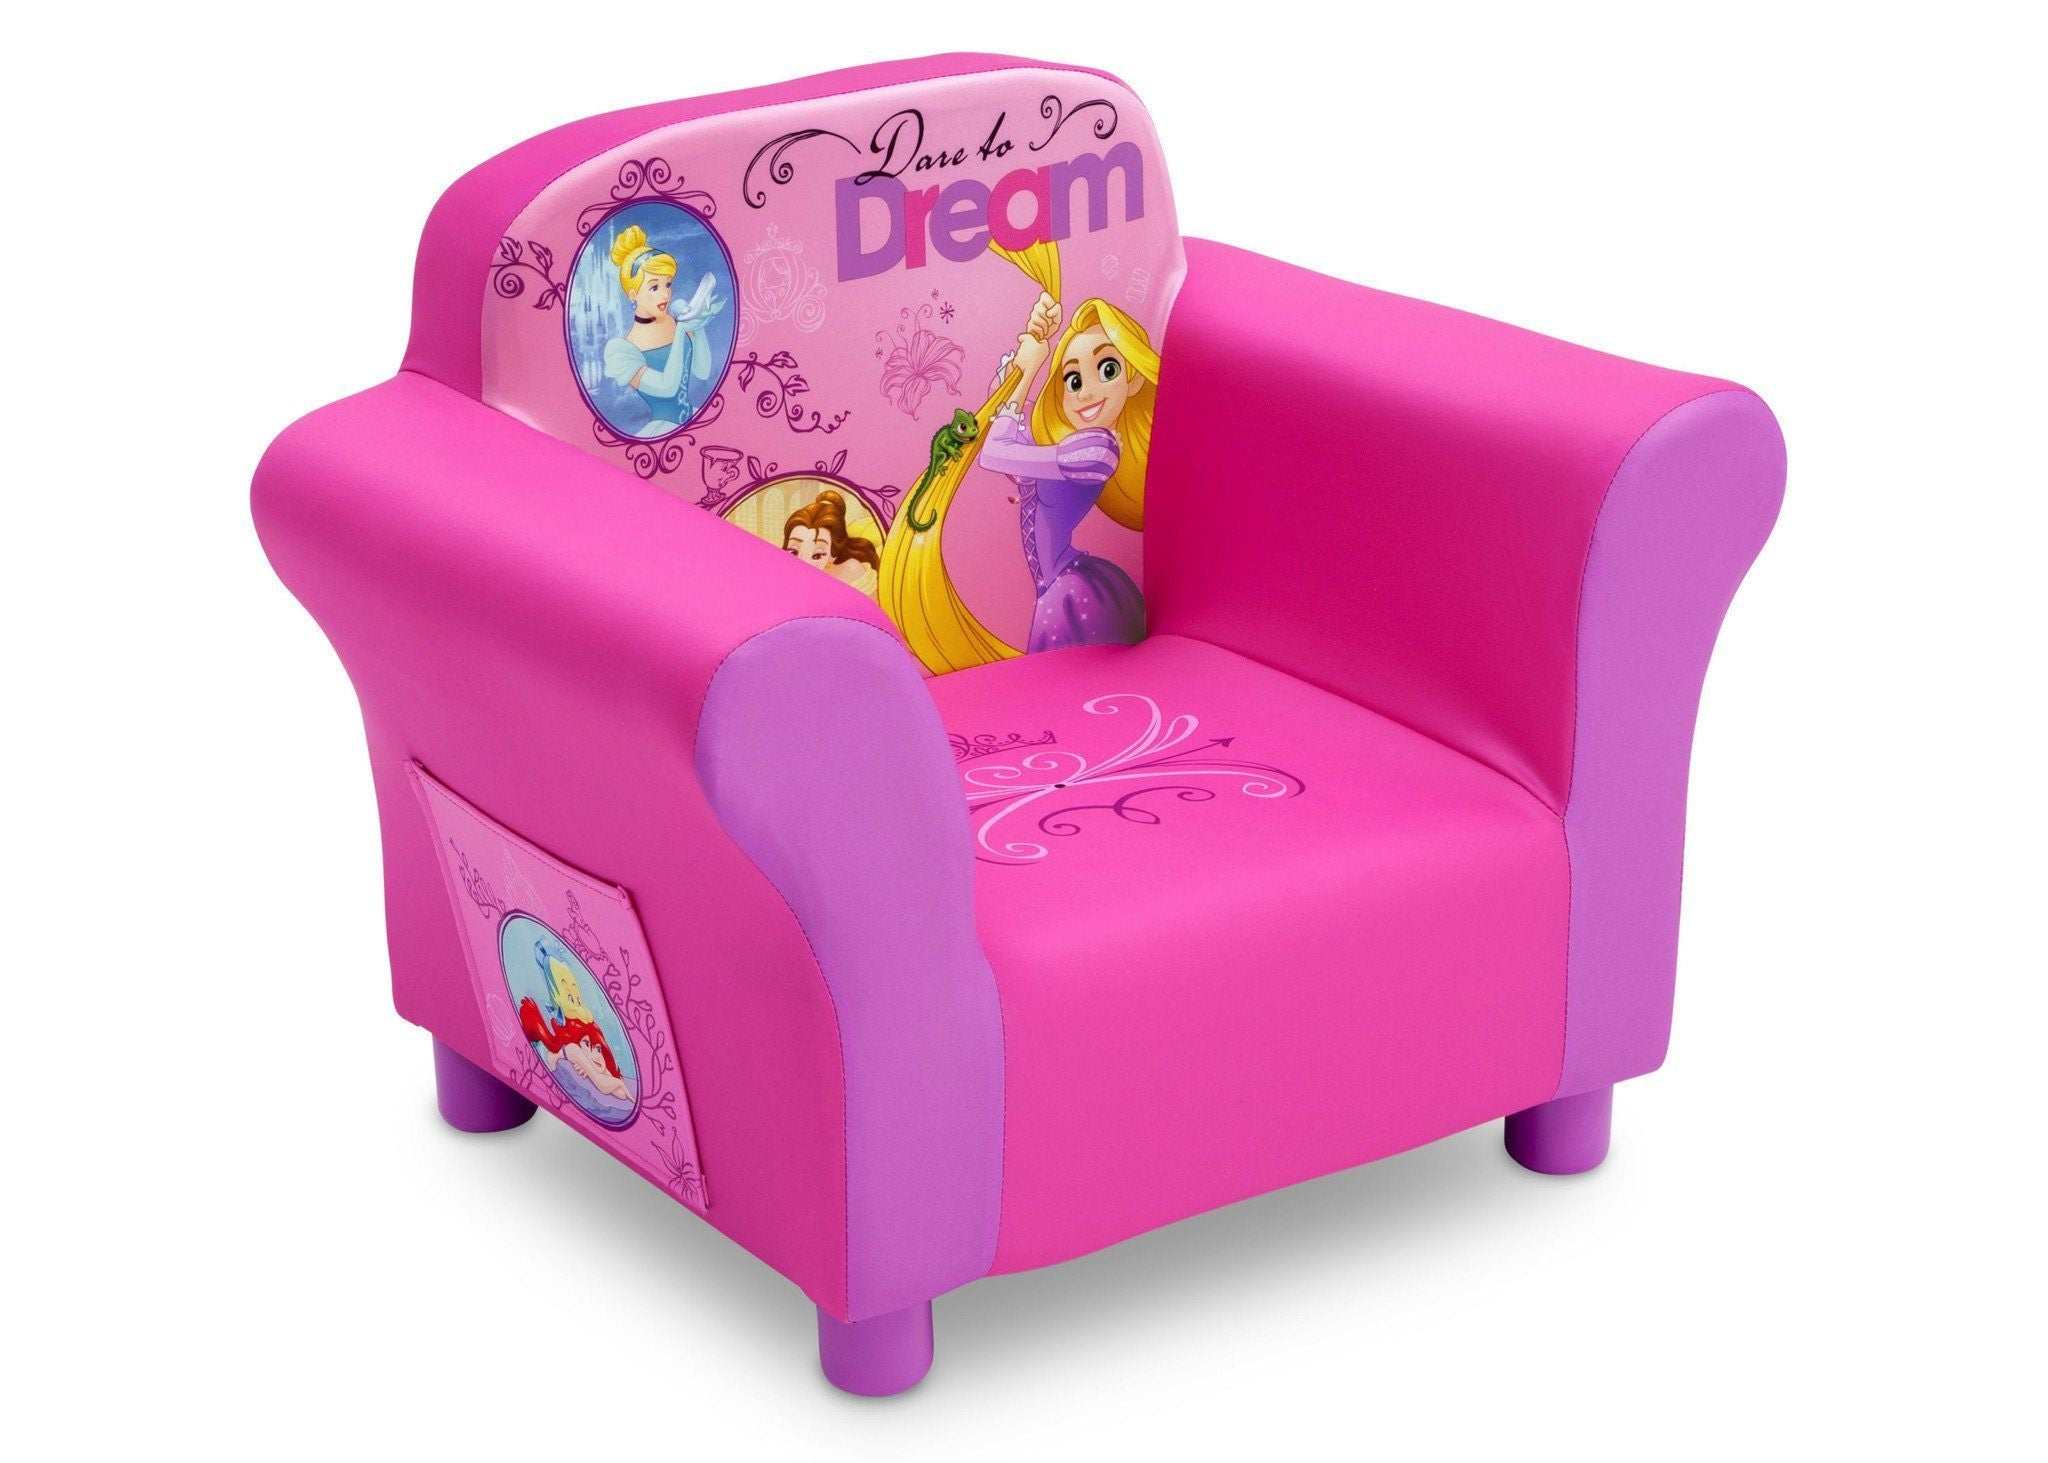 Merveilleux Delta Children Princess Upholstered Chair, Right Side View A1a ...